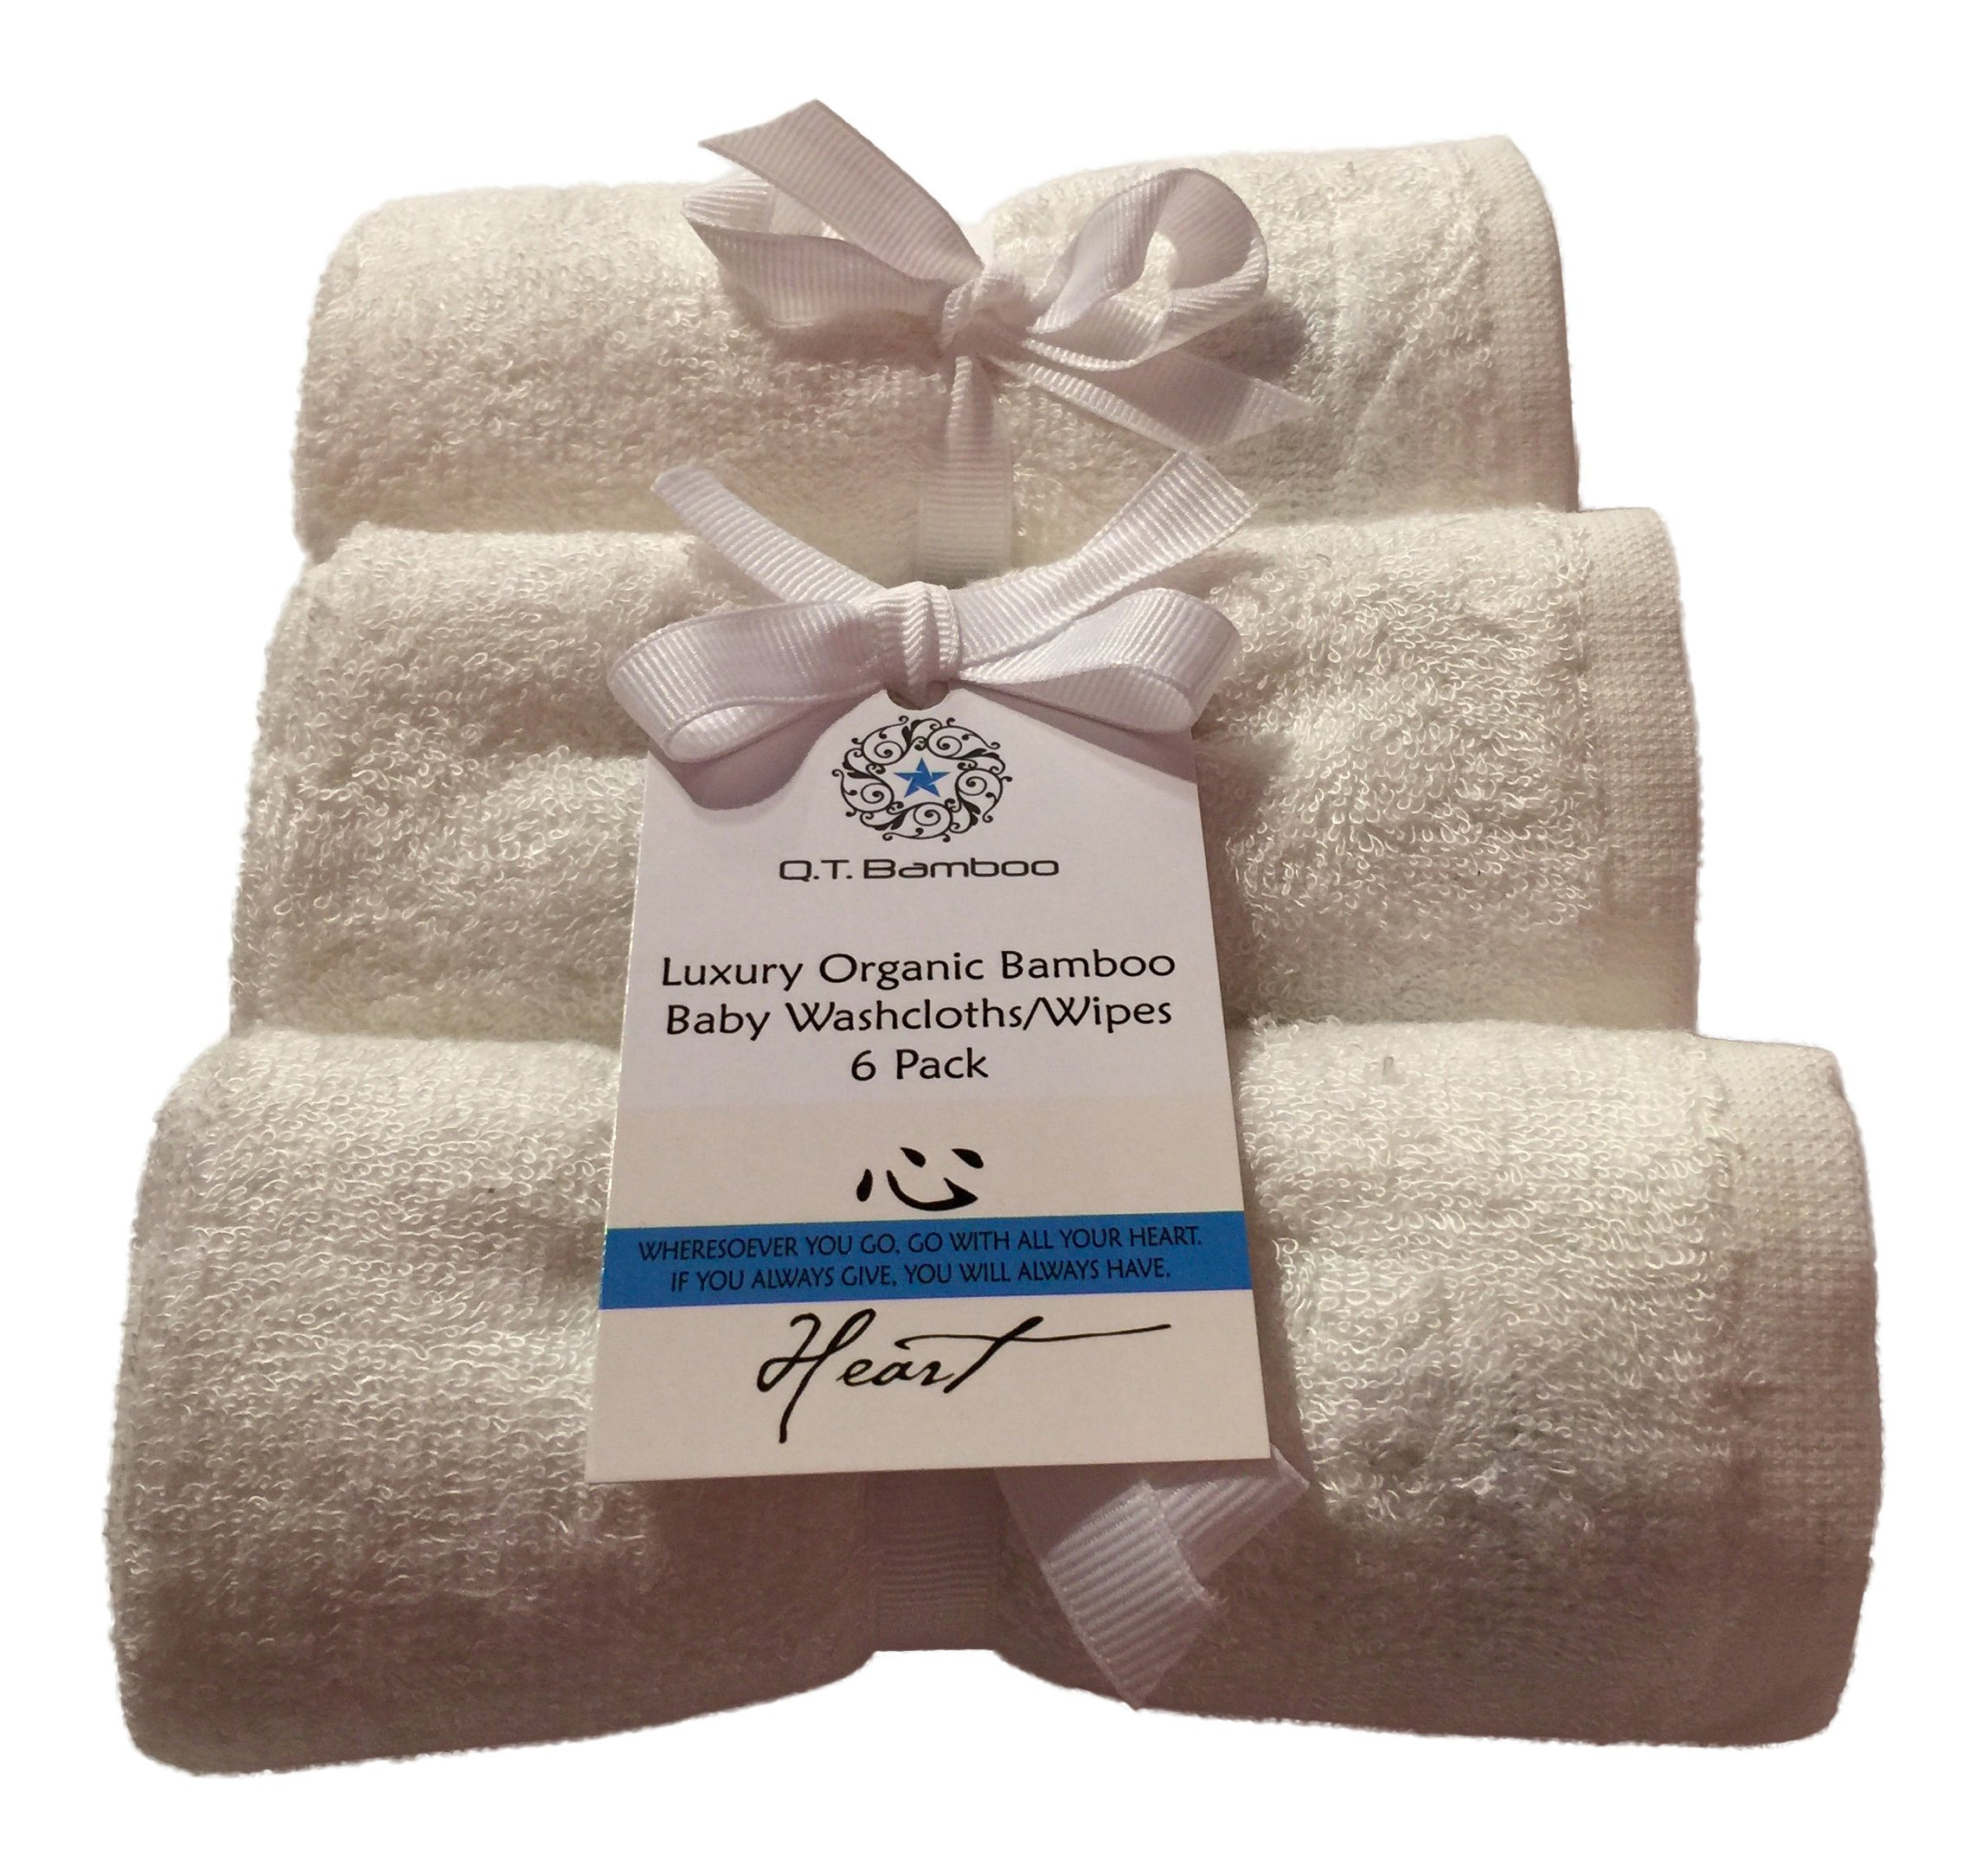 Bamboo Washcloths Face Towels for Sensitive Skin Great for Baby or Adult 6 Pack (White) by Q.T. Bamboo